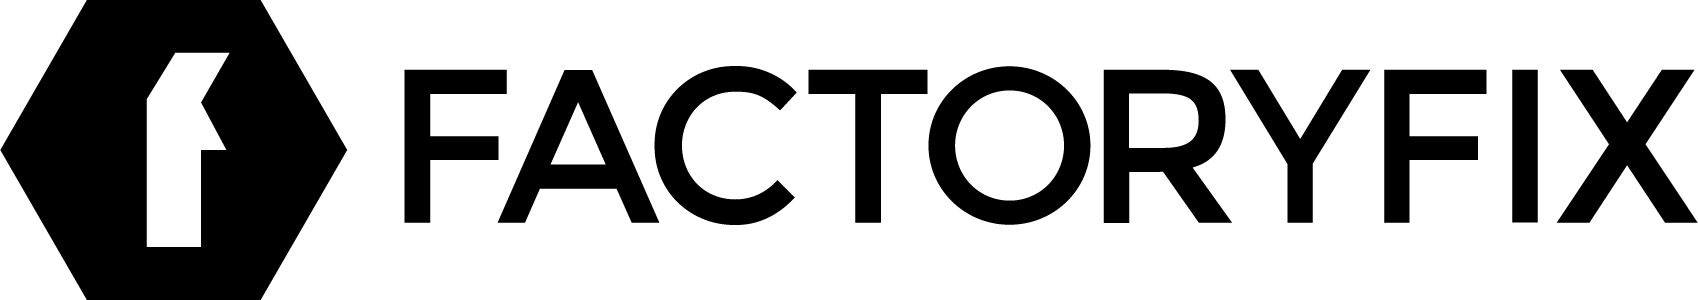 Patrick O'Rahilly, CEO and Founder of FactoryFix Addresses Hiring the Right Team to Succeed in Automation